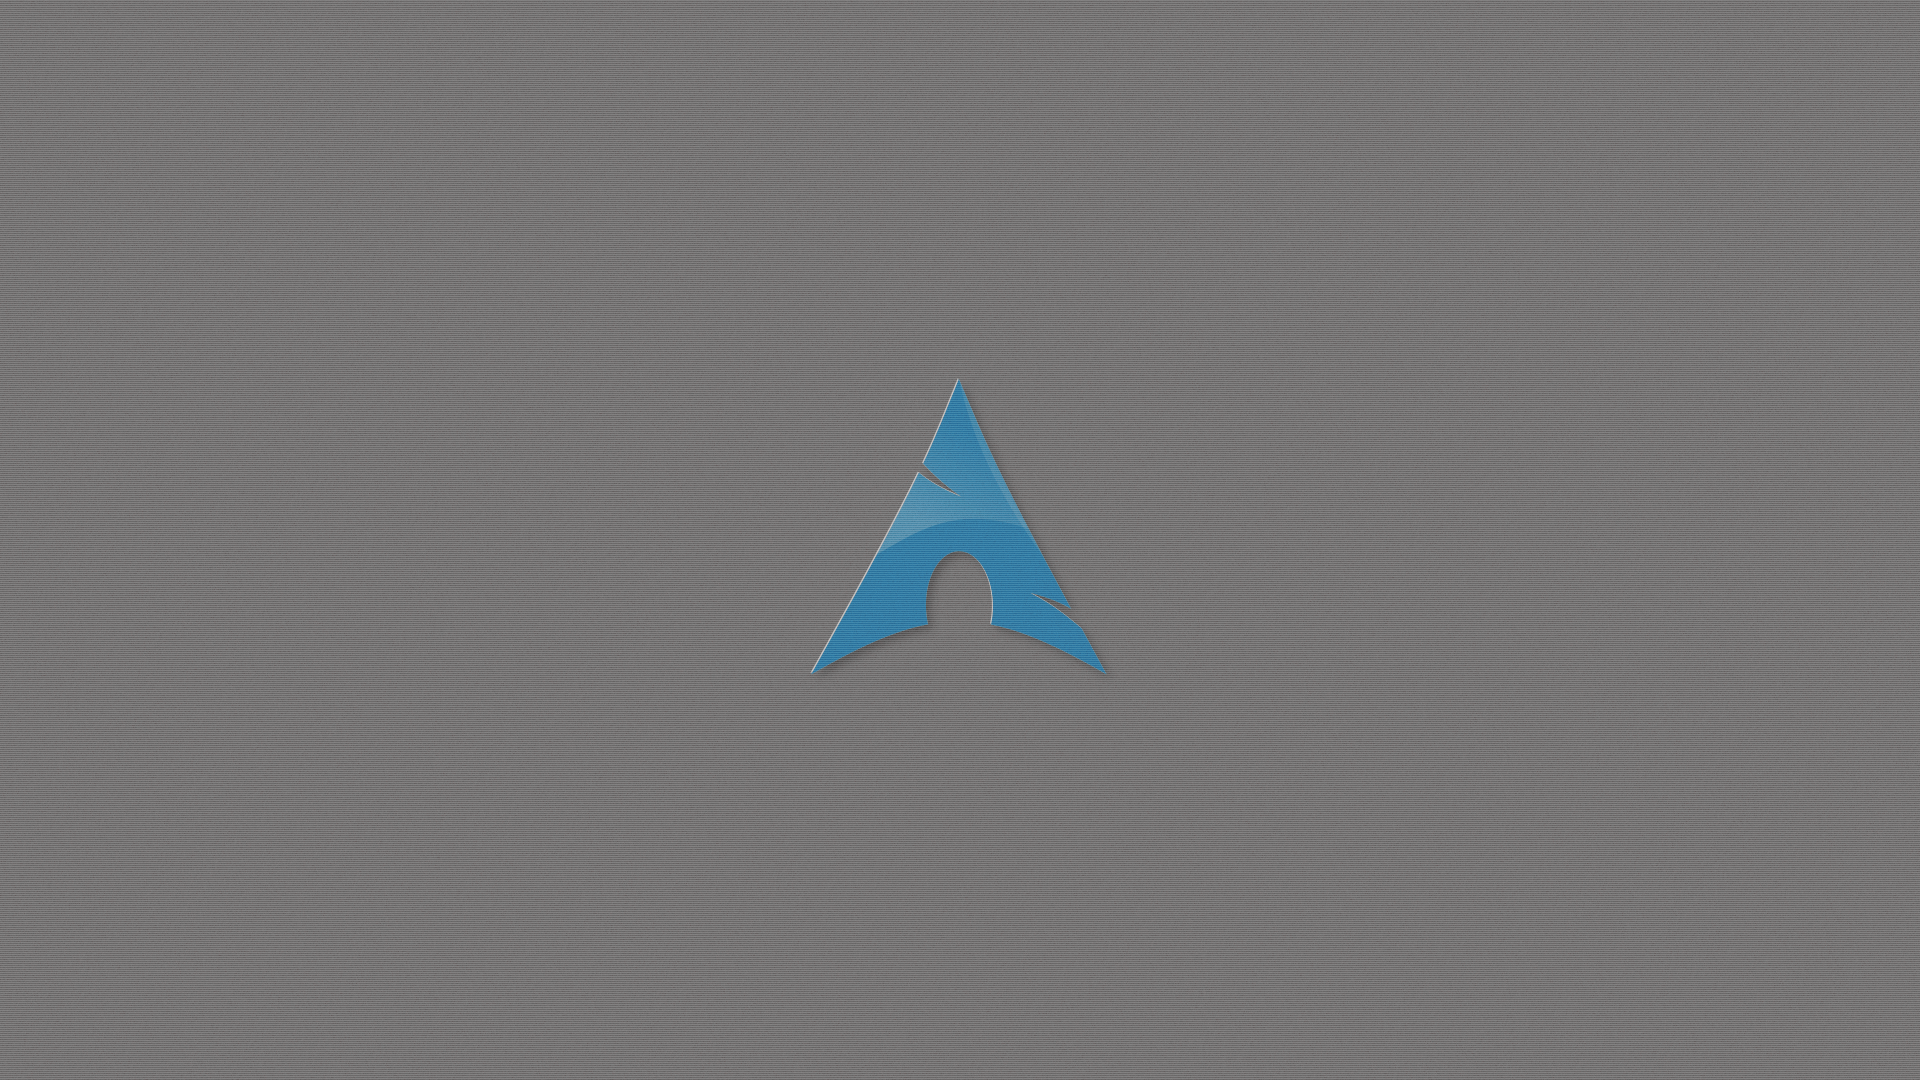 Some Simplistic Debian And Arch Linux Wallpapers Linuxious